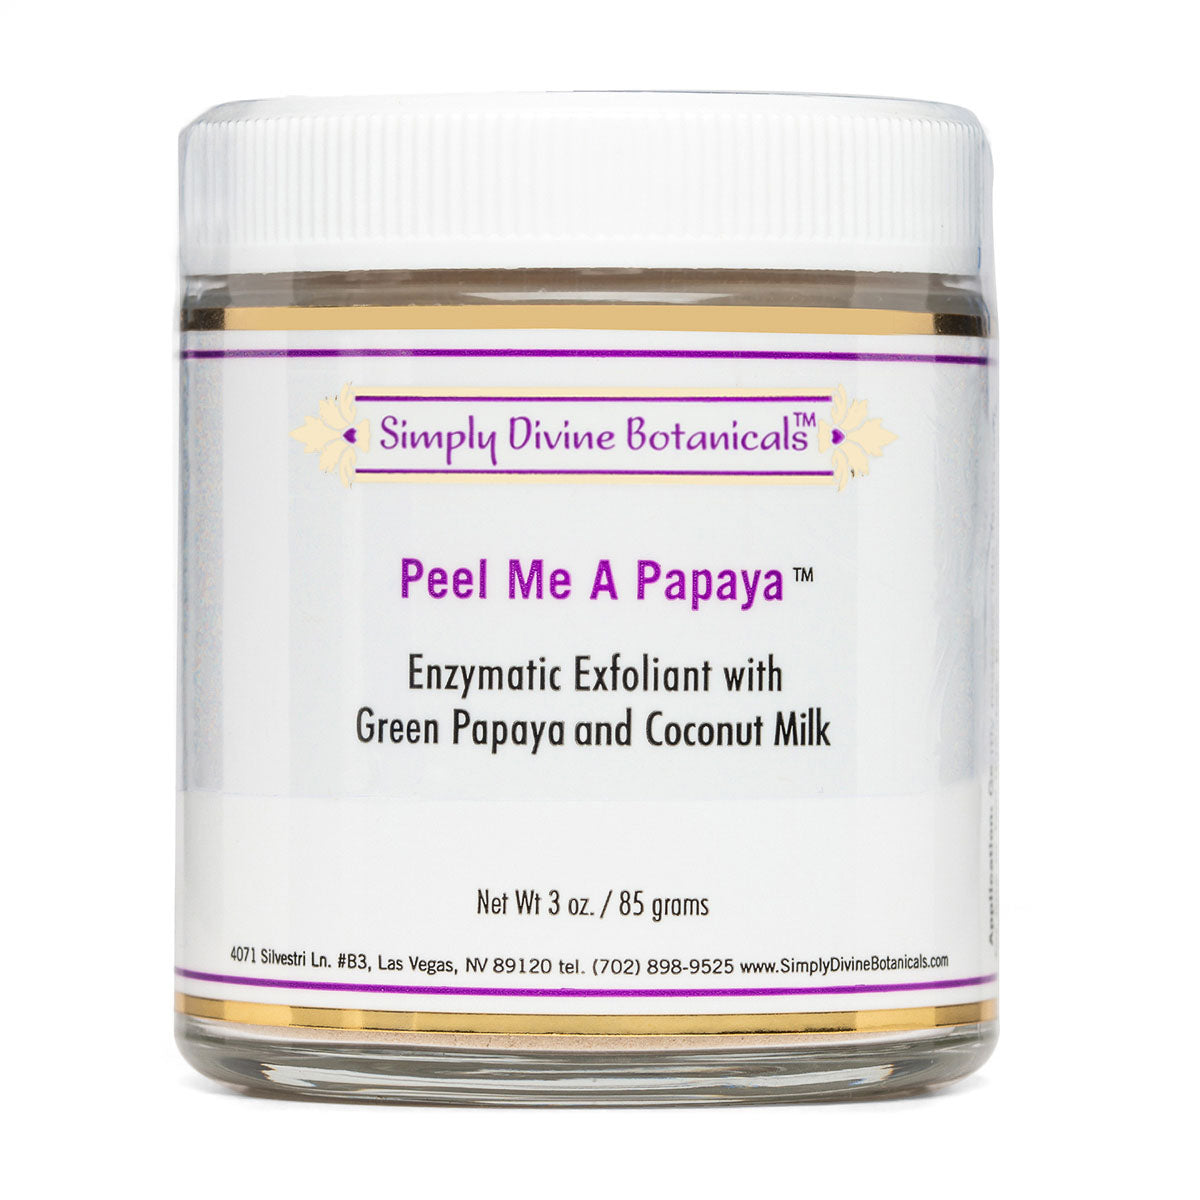 Peel Me A Papaya (3oz) - Simply Divine Botanicals